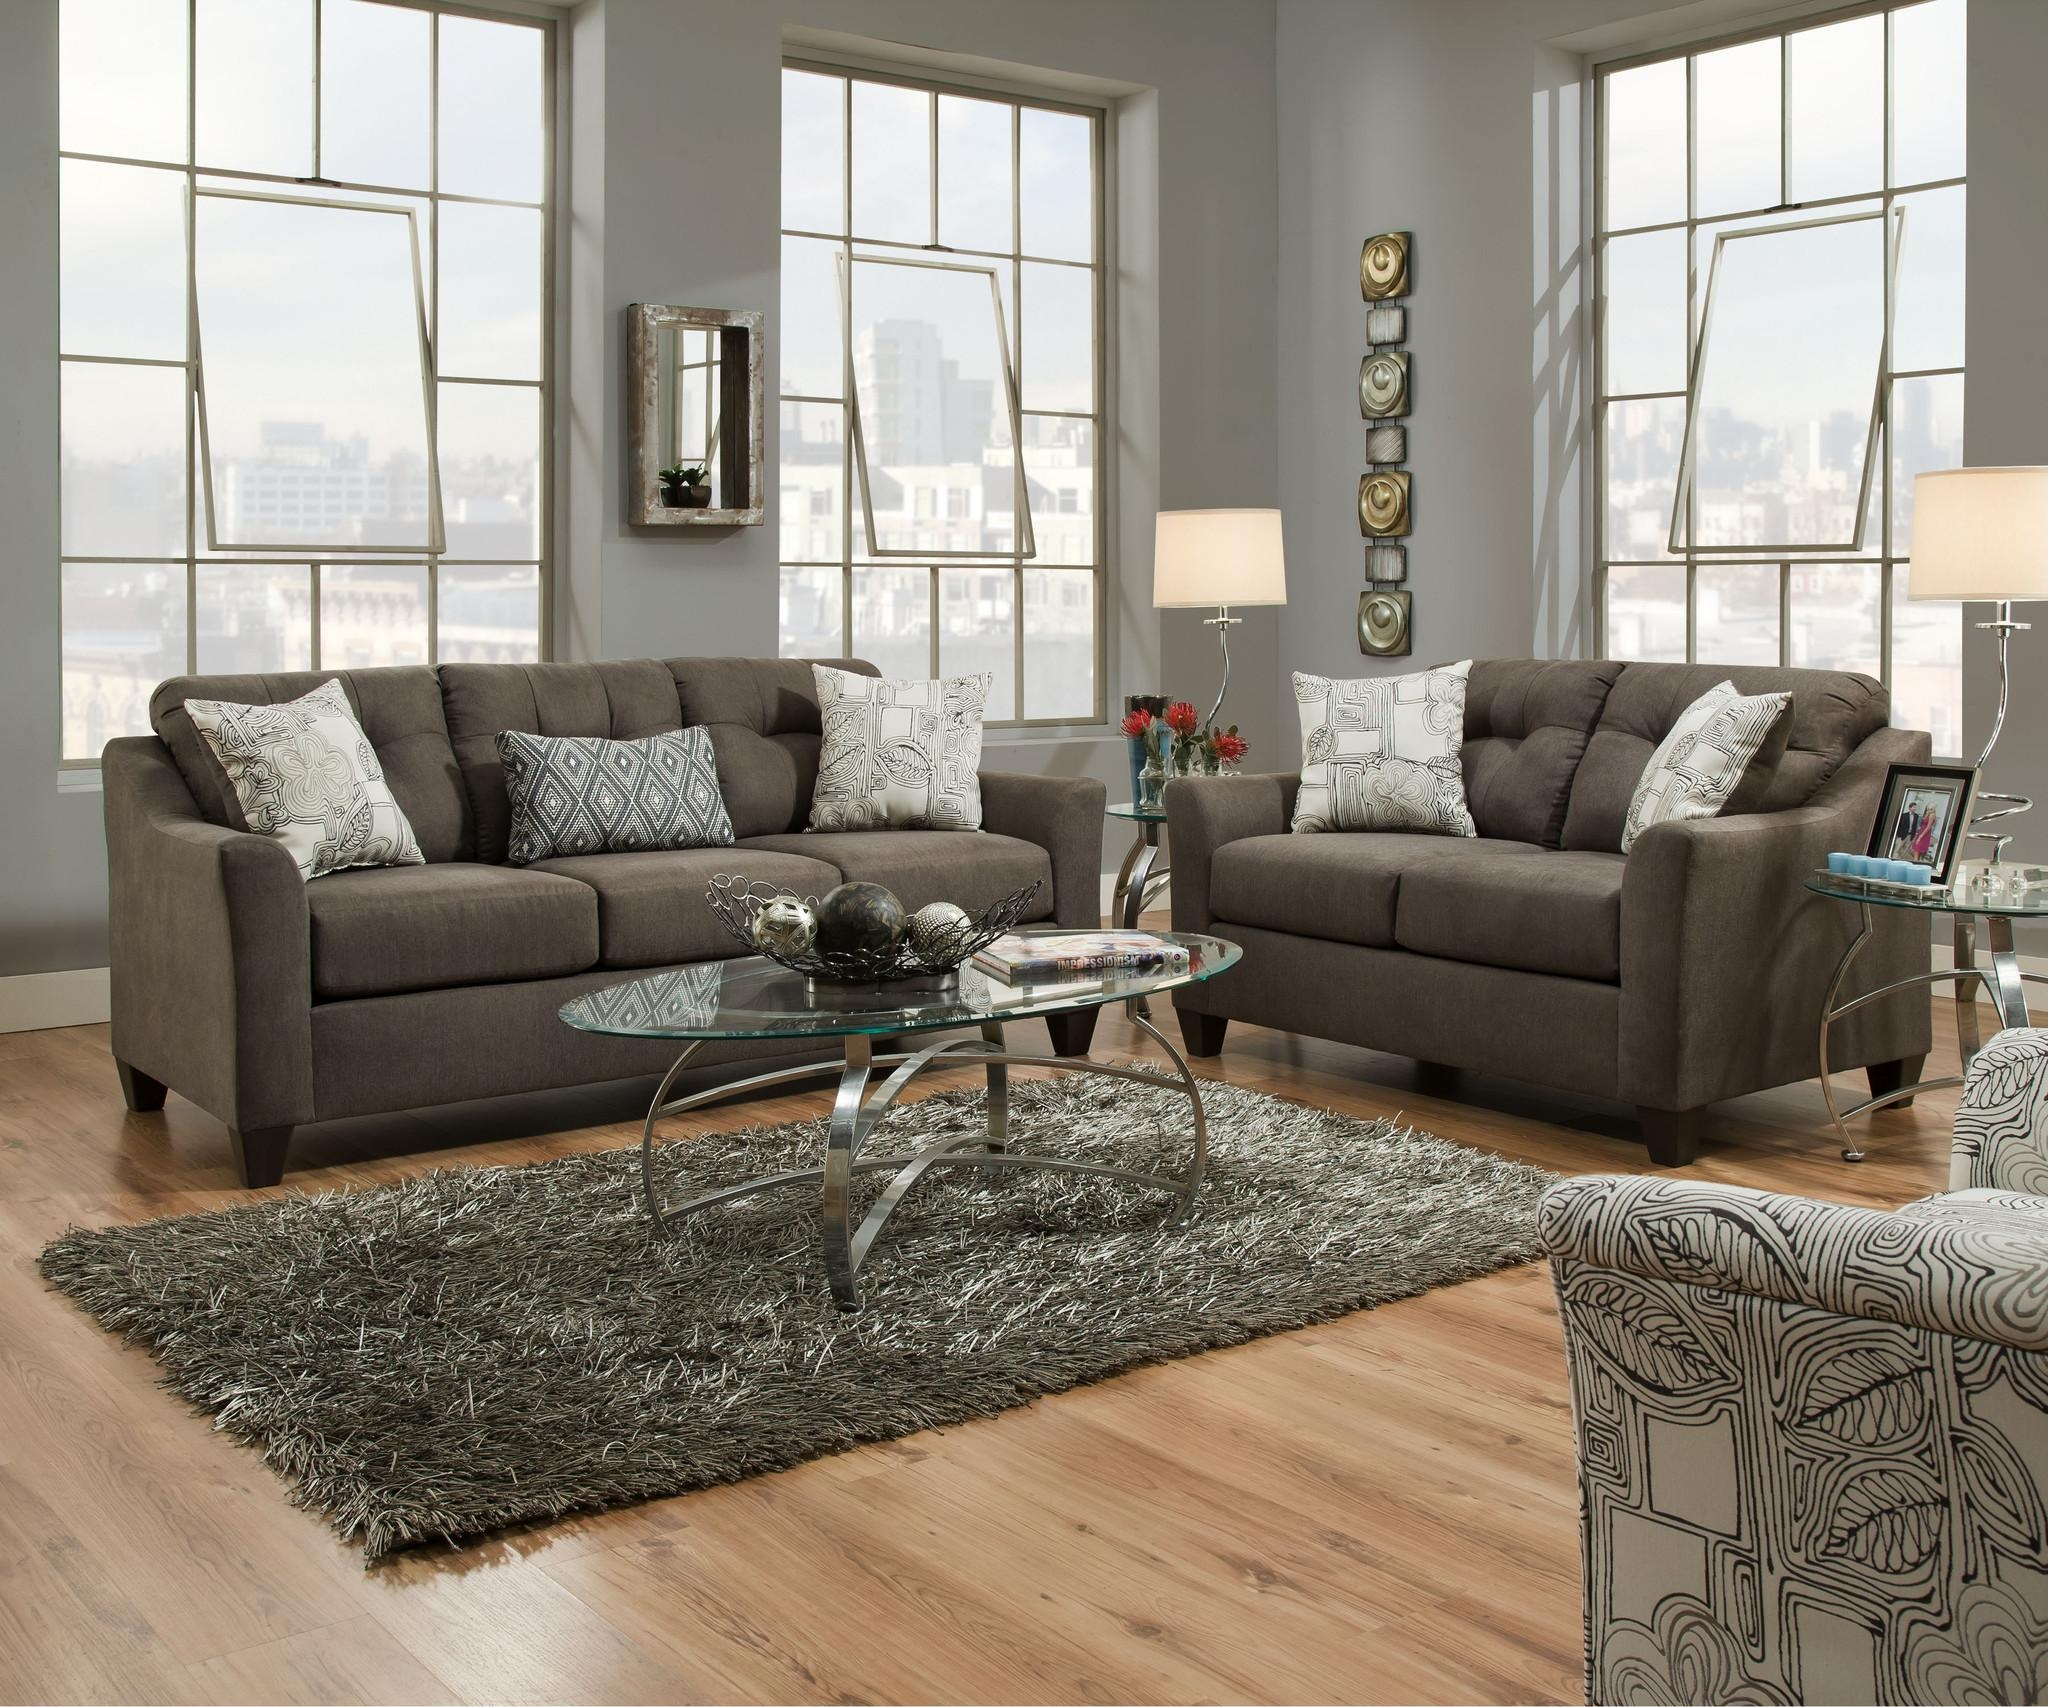 Sofas: Comfortable Simmons Sleeper Sofa For Cozy Sofas Design Throughout Simmons Sofas And Loveseats (View 4 of 20)